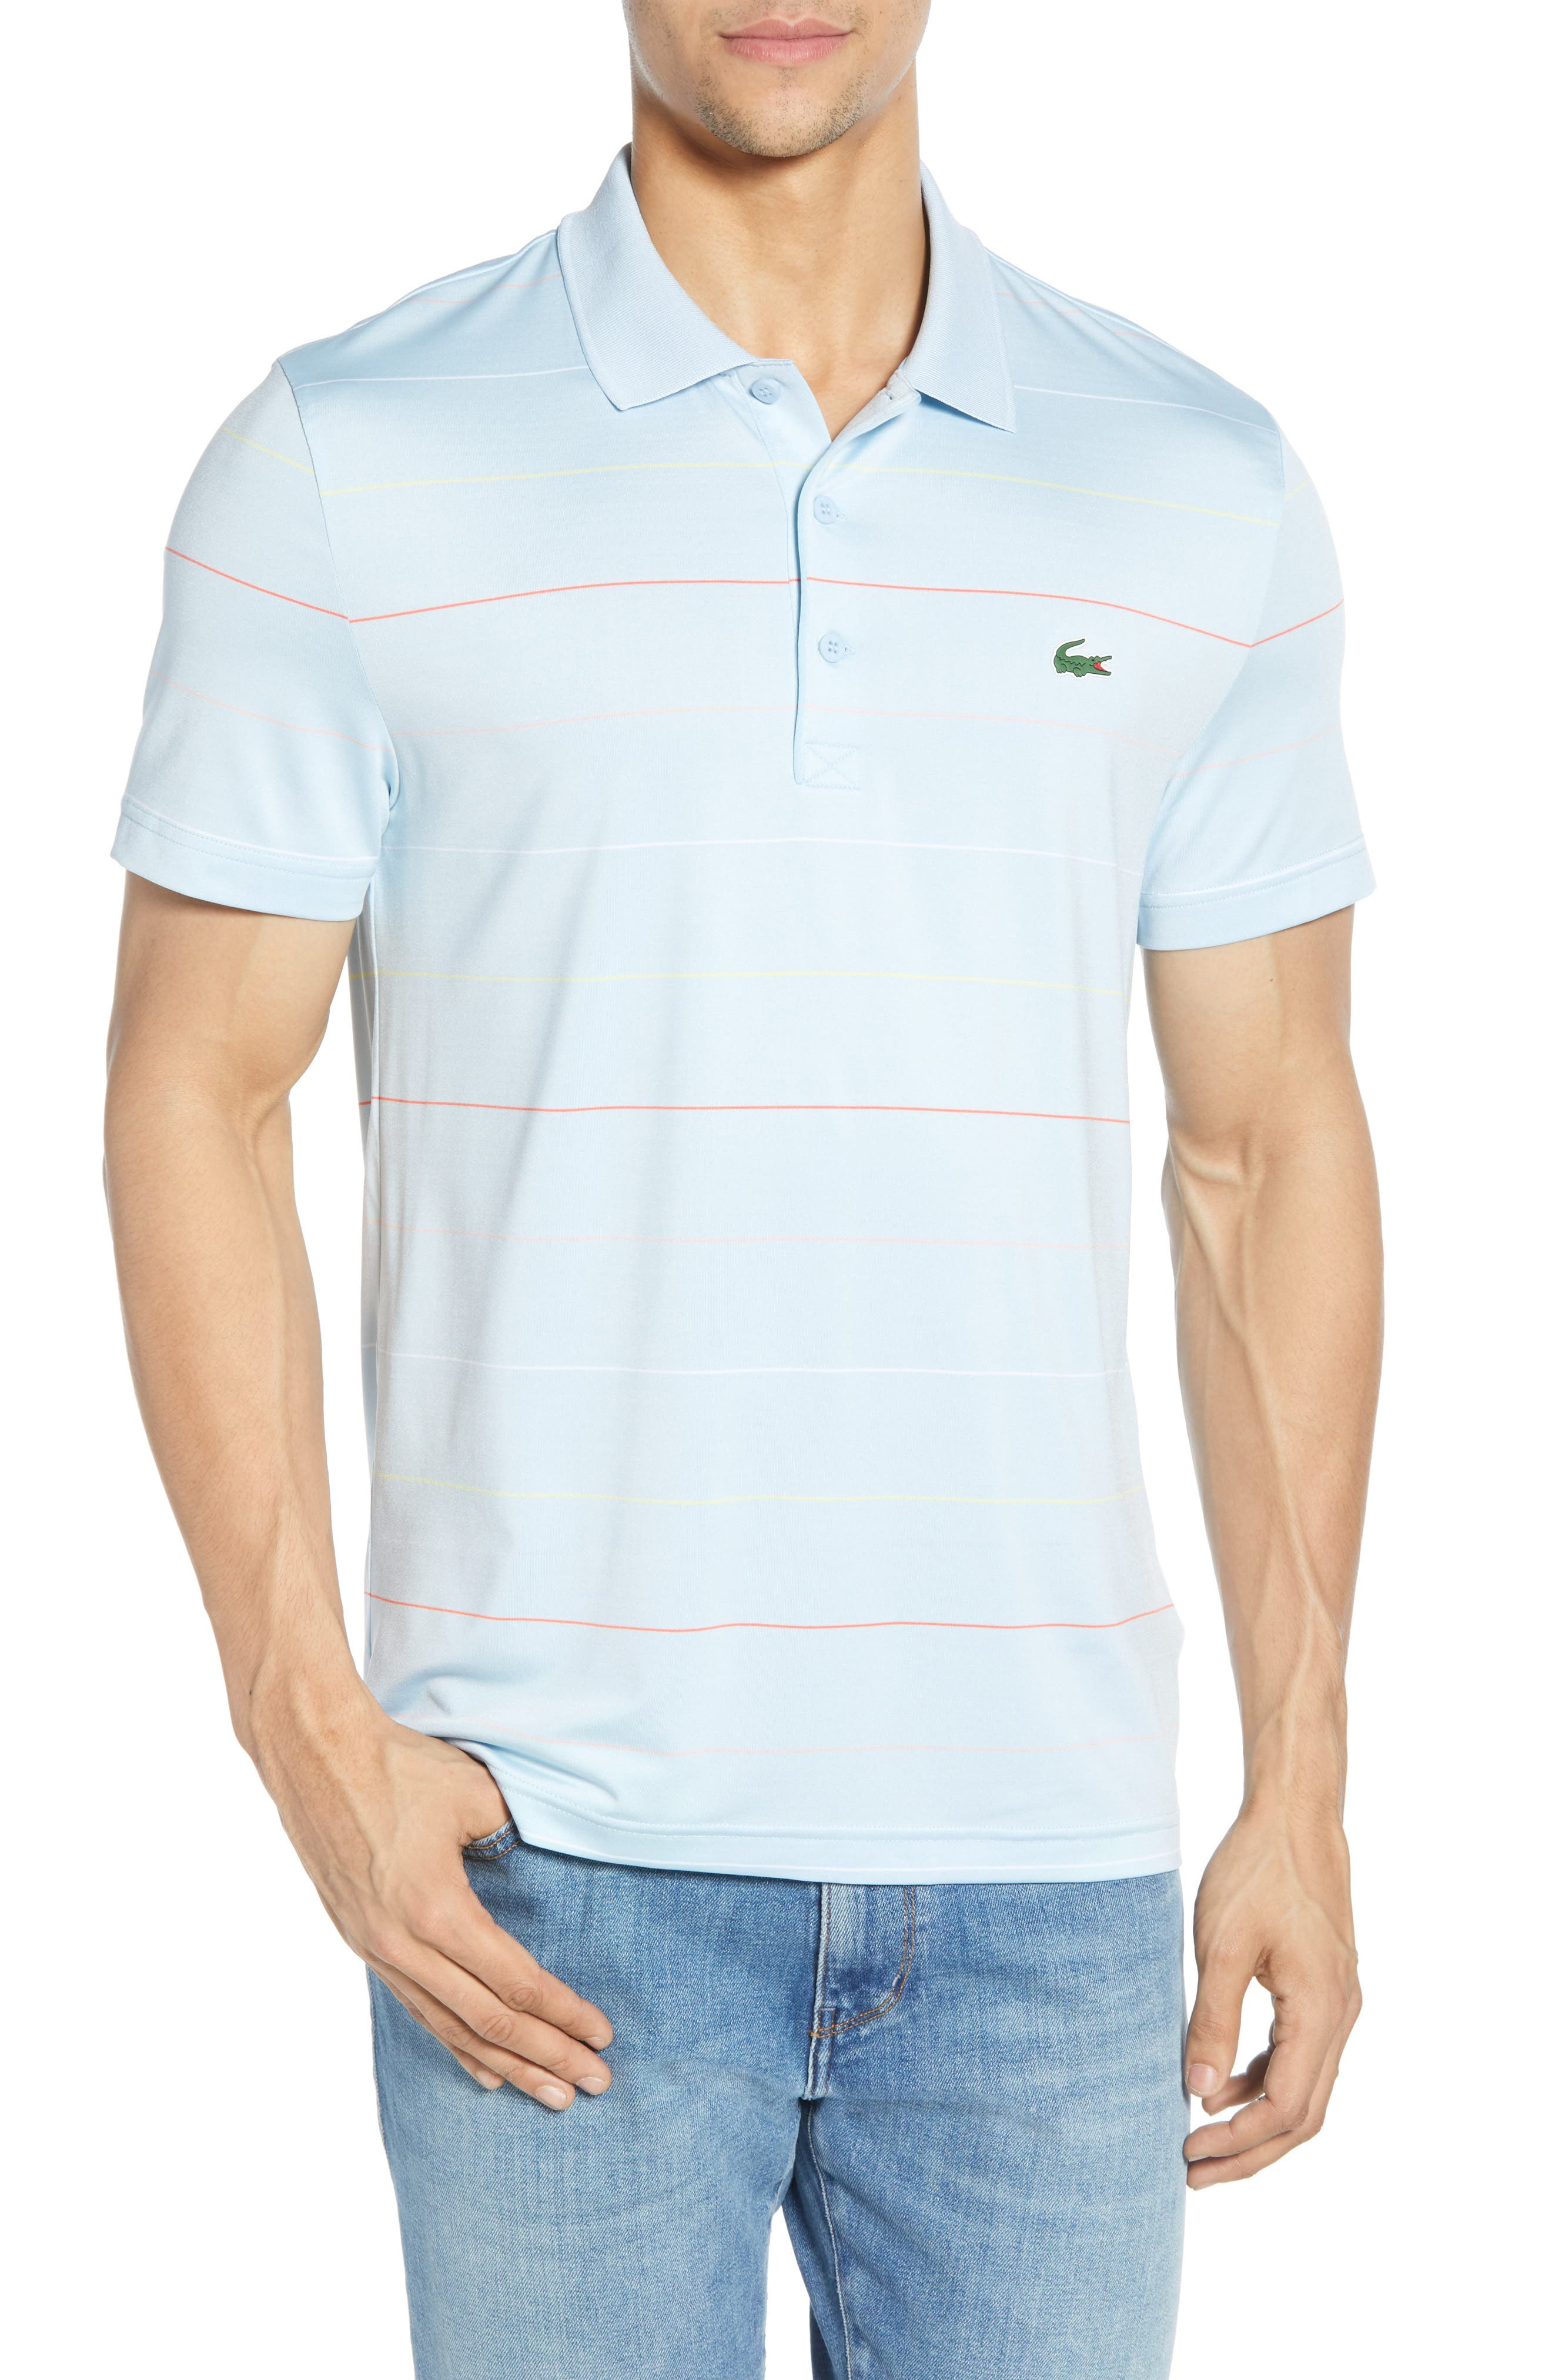 LACOSTE Ultra Dry Regular Fit Tech Polo, Main, color, DREAM BLUE/ MANGO